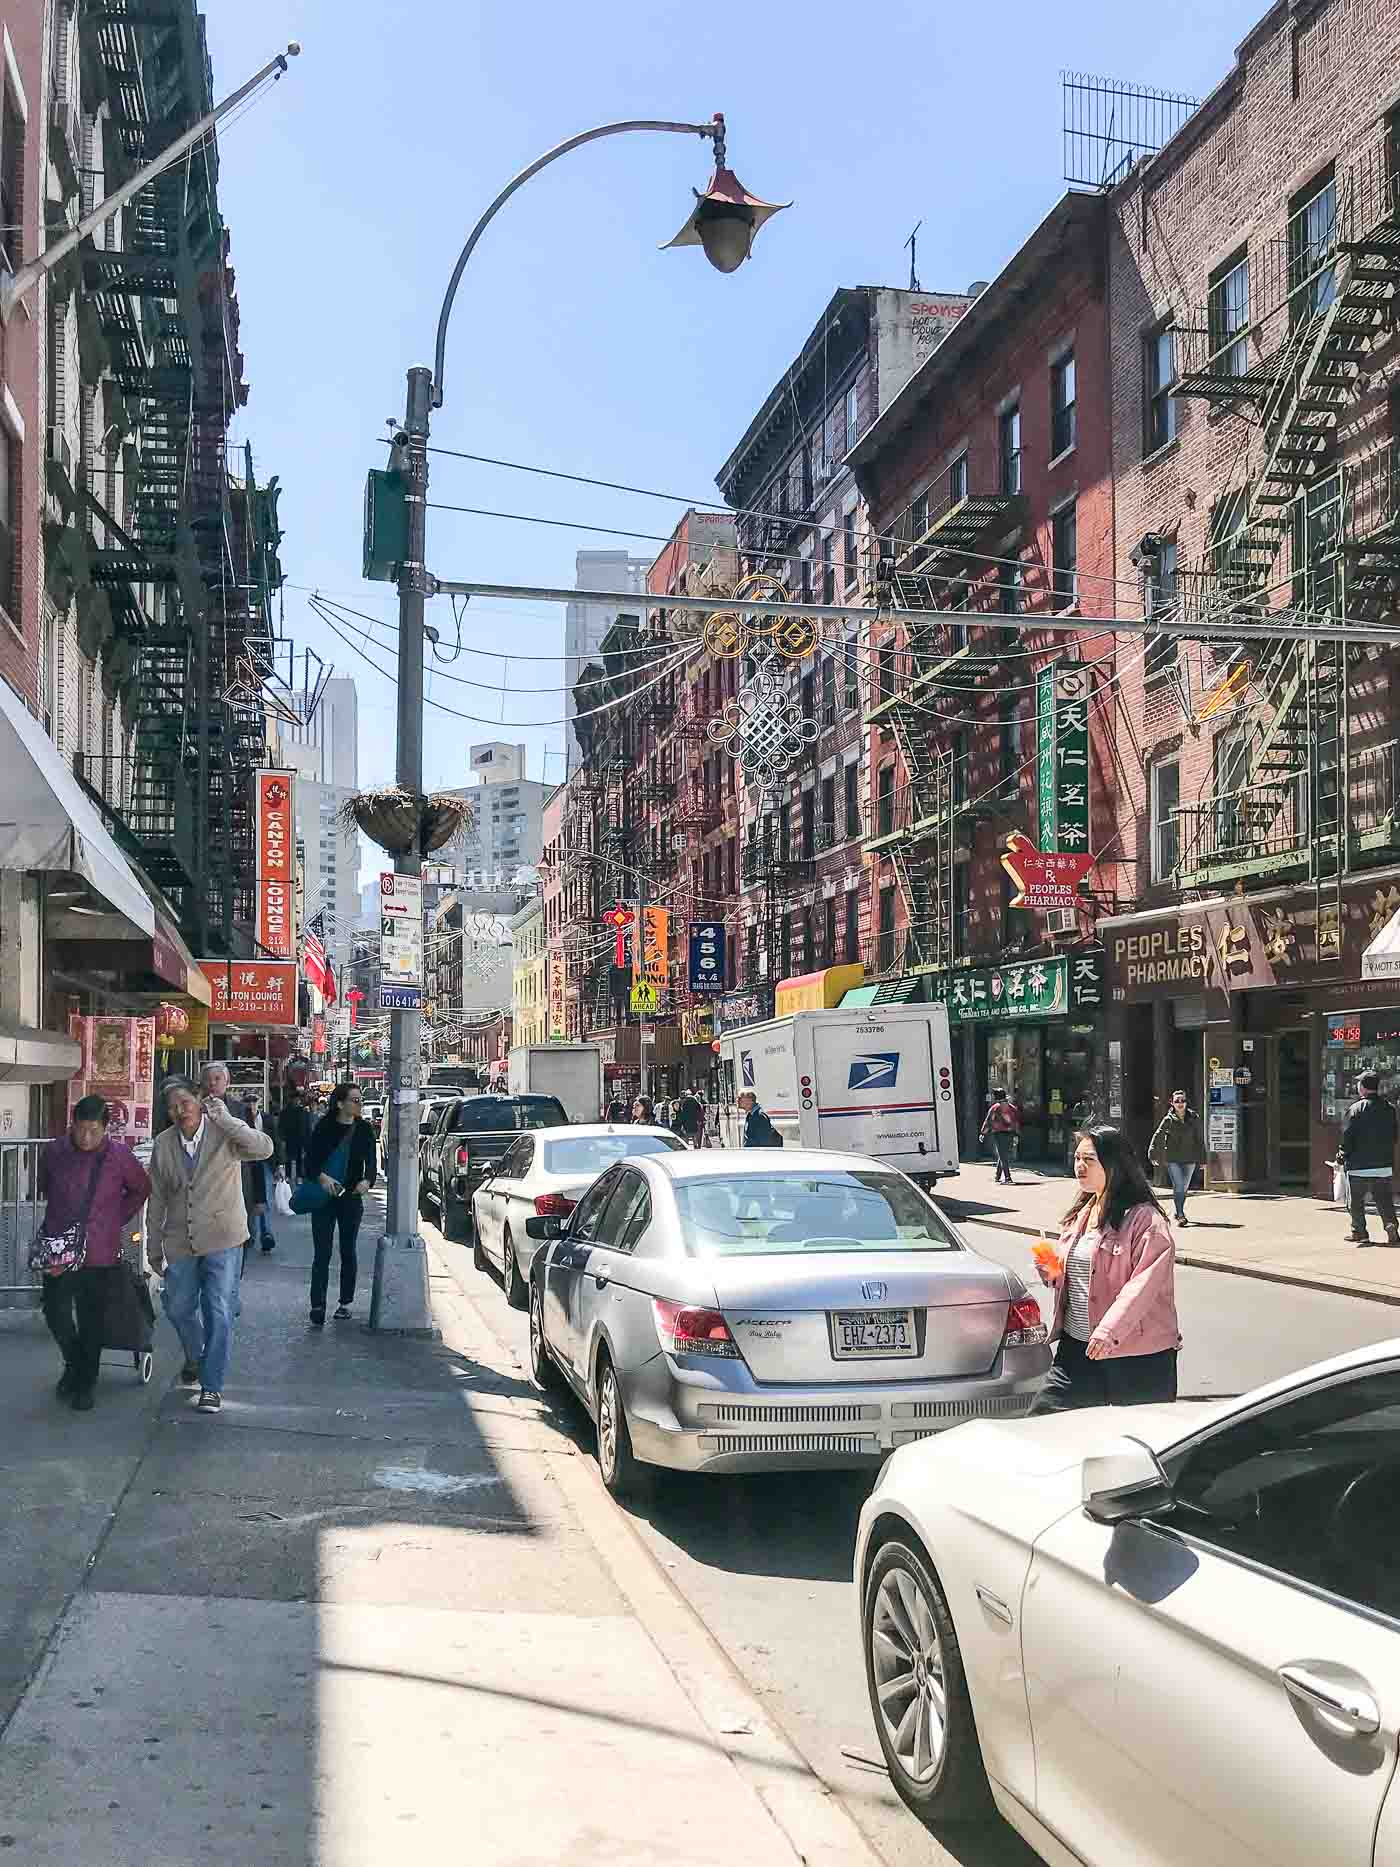 Walking through China Town in NYC